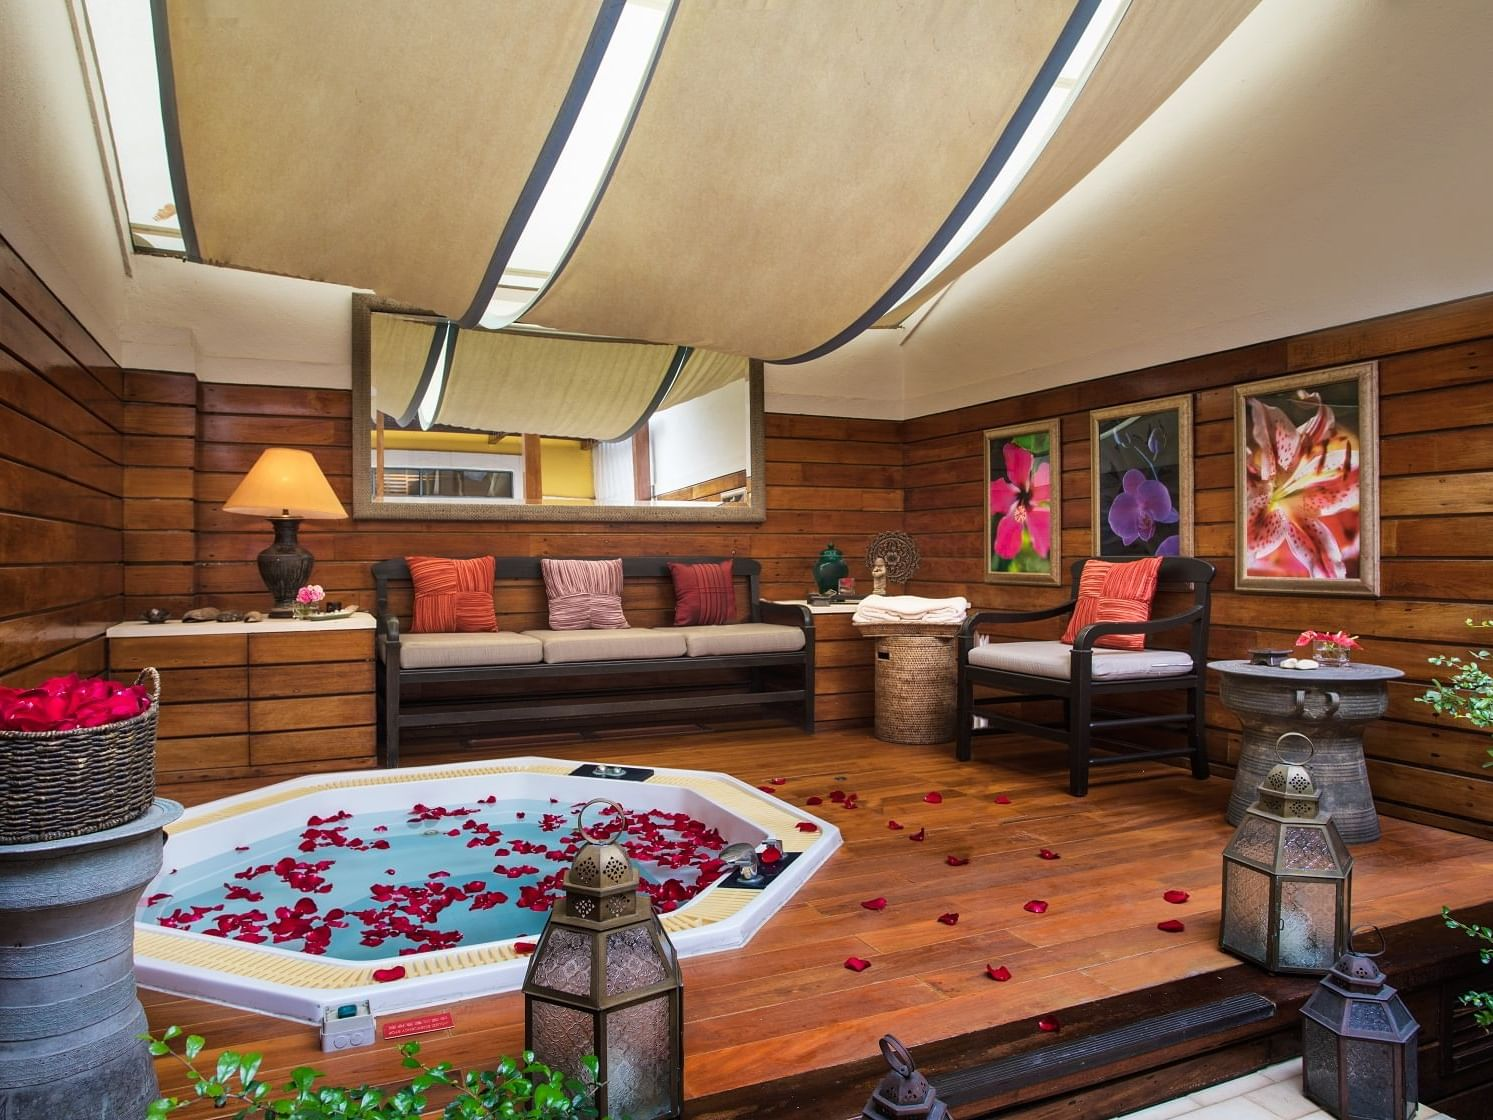 Bathtub with petals on it and a relaxing surrounding at Artyzen Grand Lapa Hotel Macau